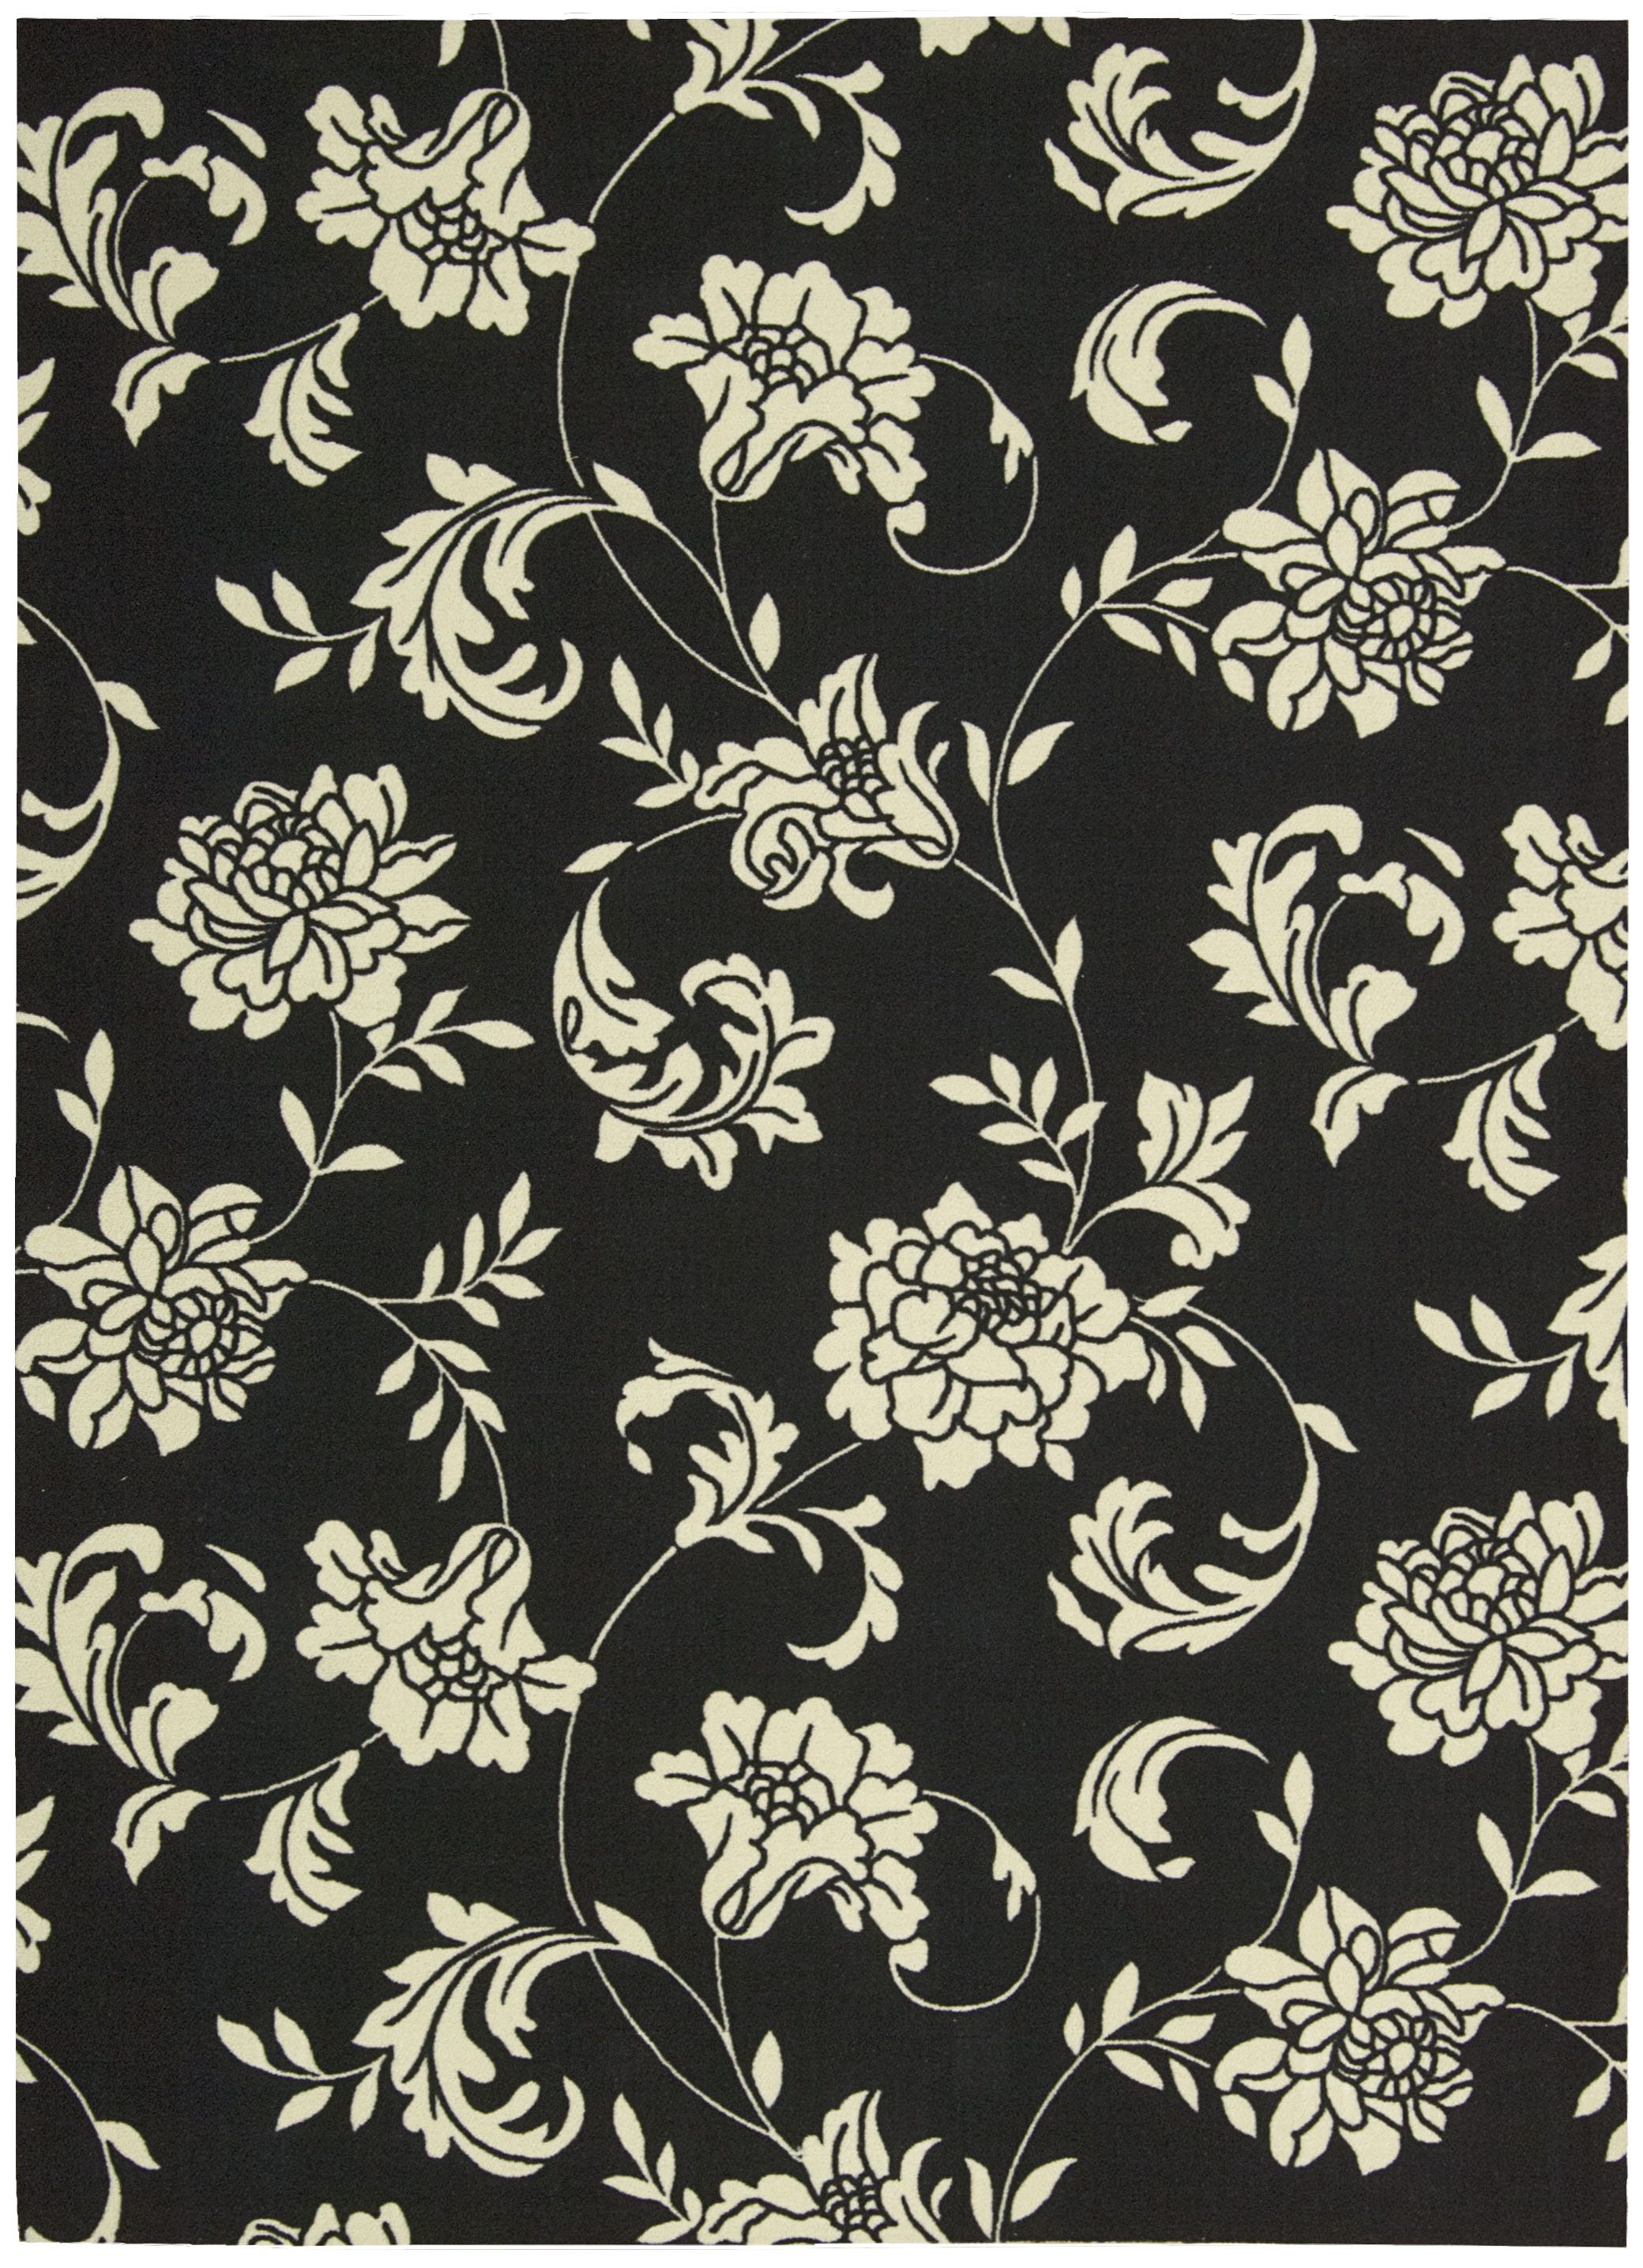 Nourison Indoor/Outdoor Home & Garden Black Floral Rug